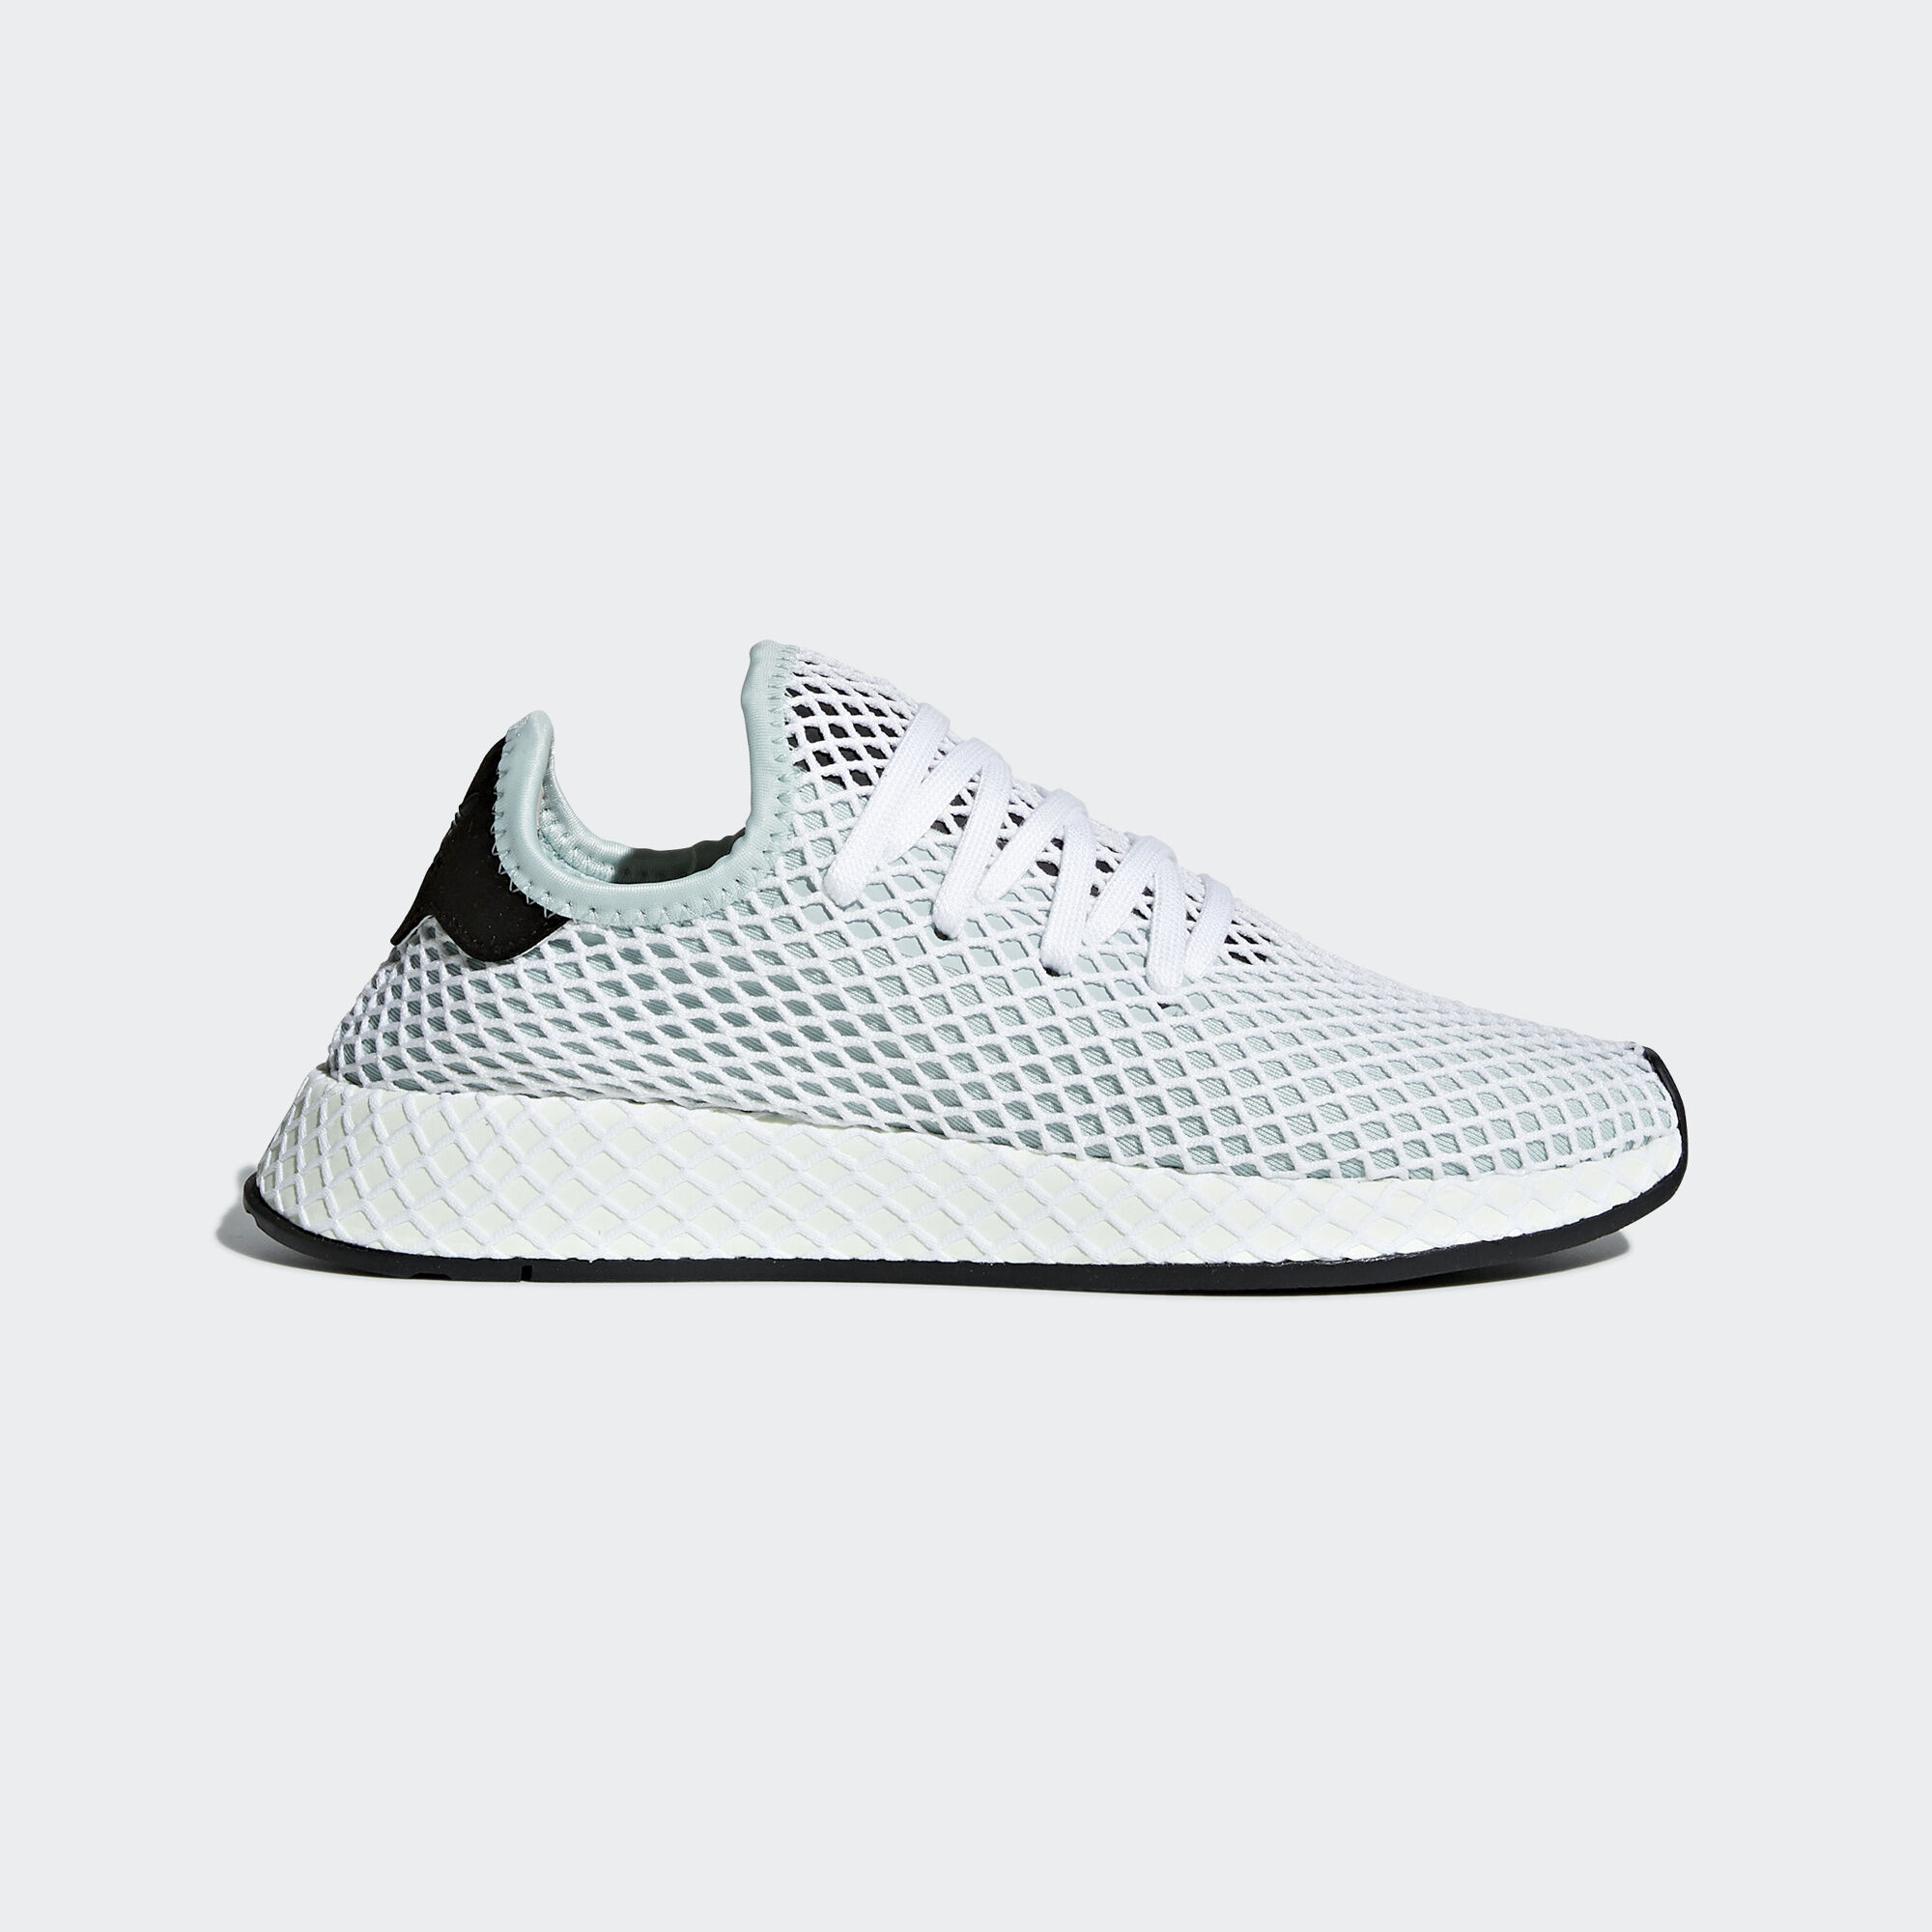 adidas Originals Deerupt Runner W Ash Green Core Black Women Running Shoe CQ2911